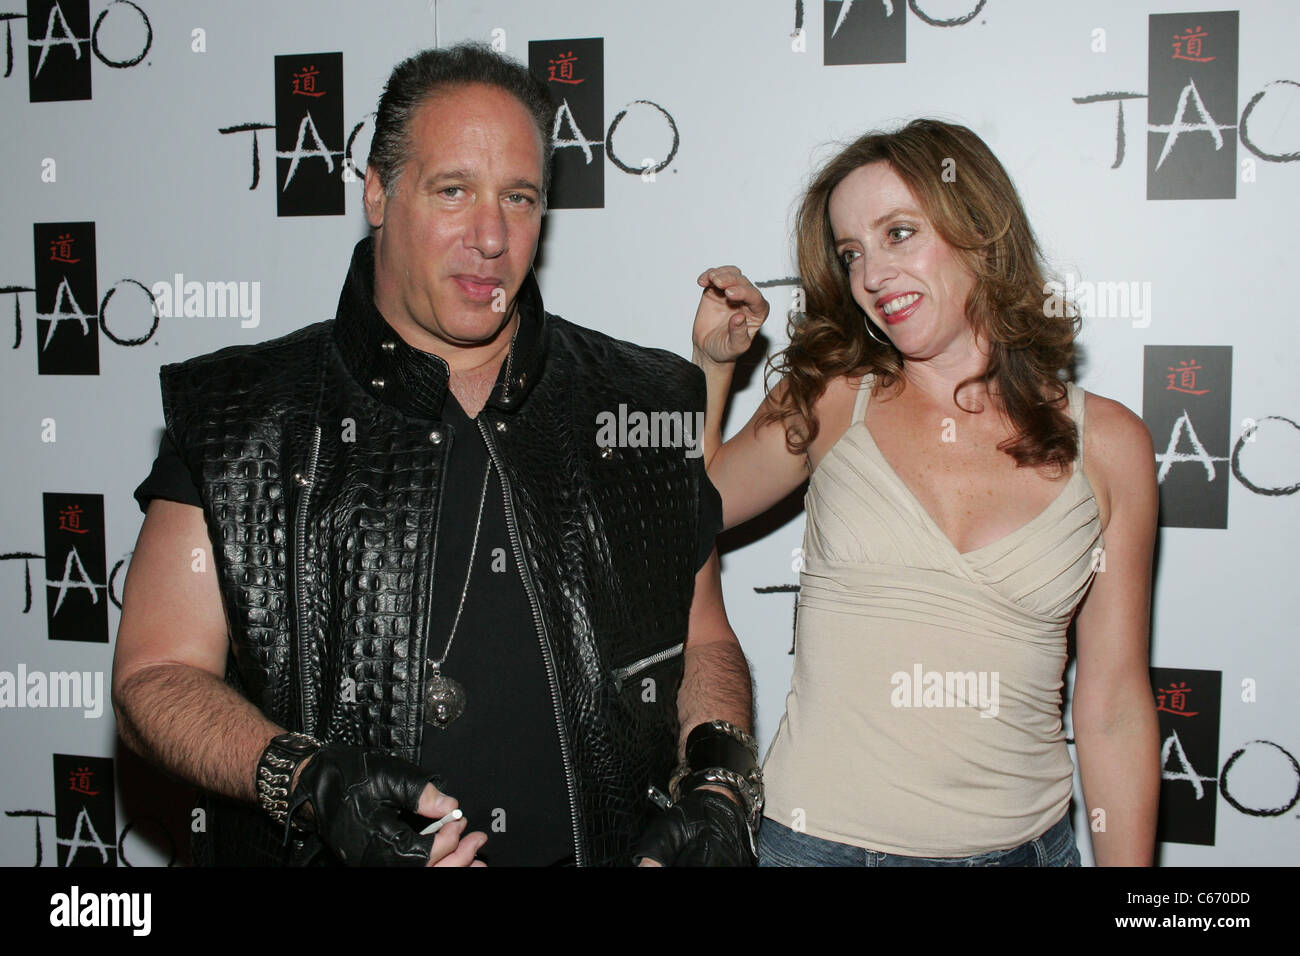 Andrew Dice Clay, Eleanor Kerrigan in attendance for Bump and Grind Competition at TAO, TAO Nightclub at The Venetian - Stock Image